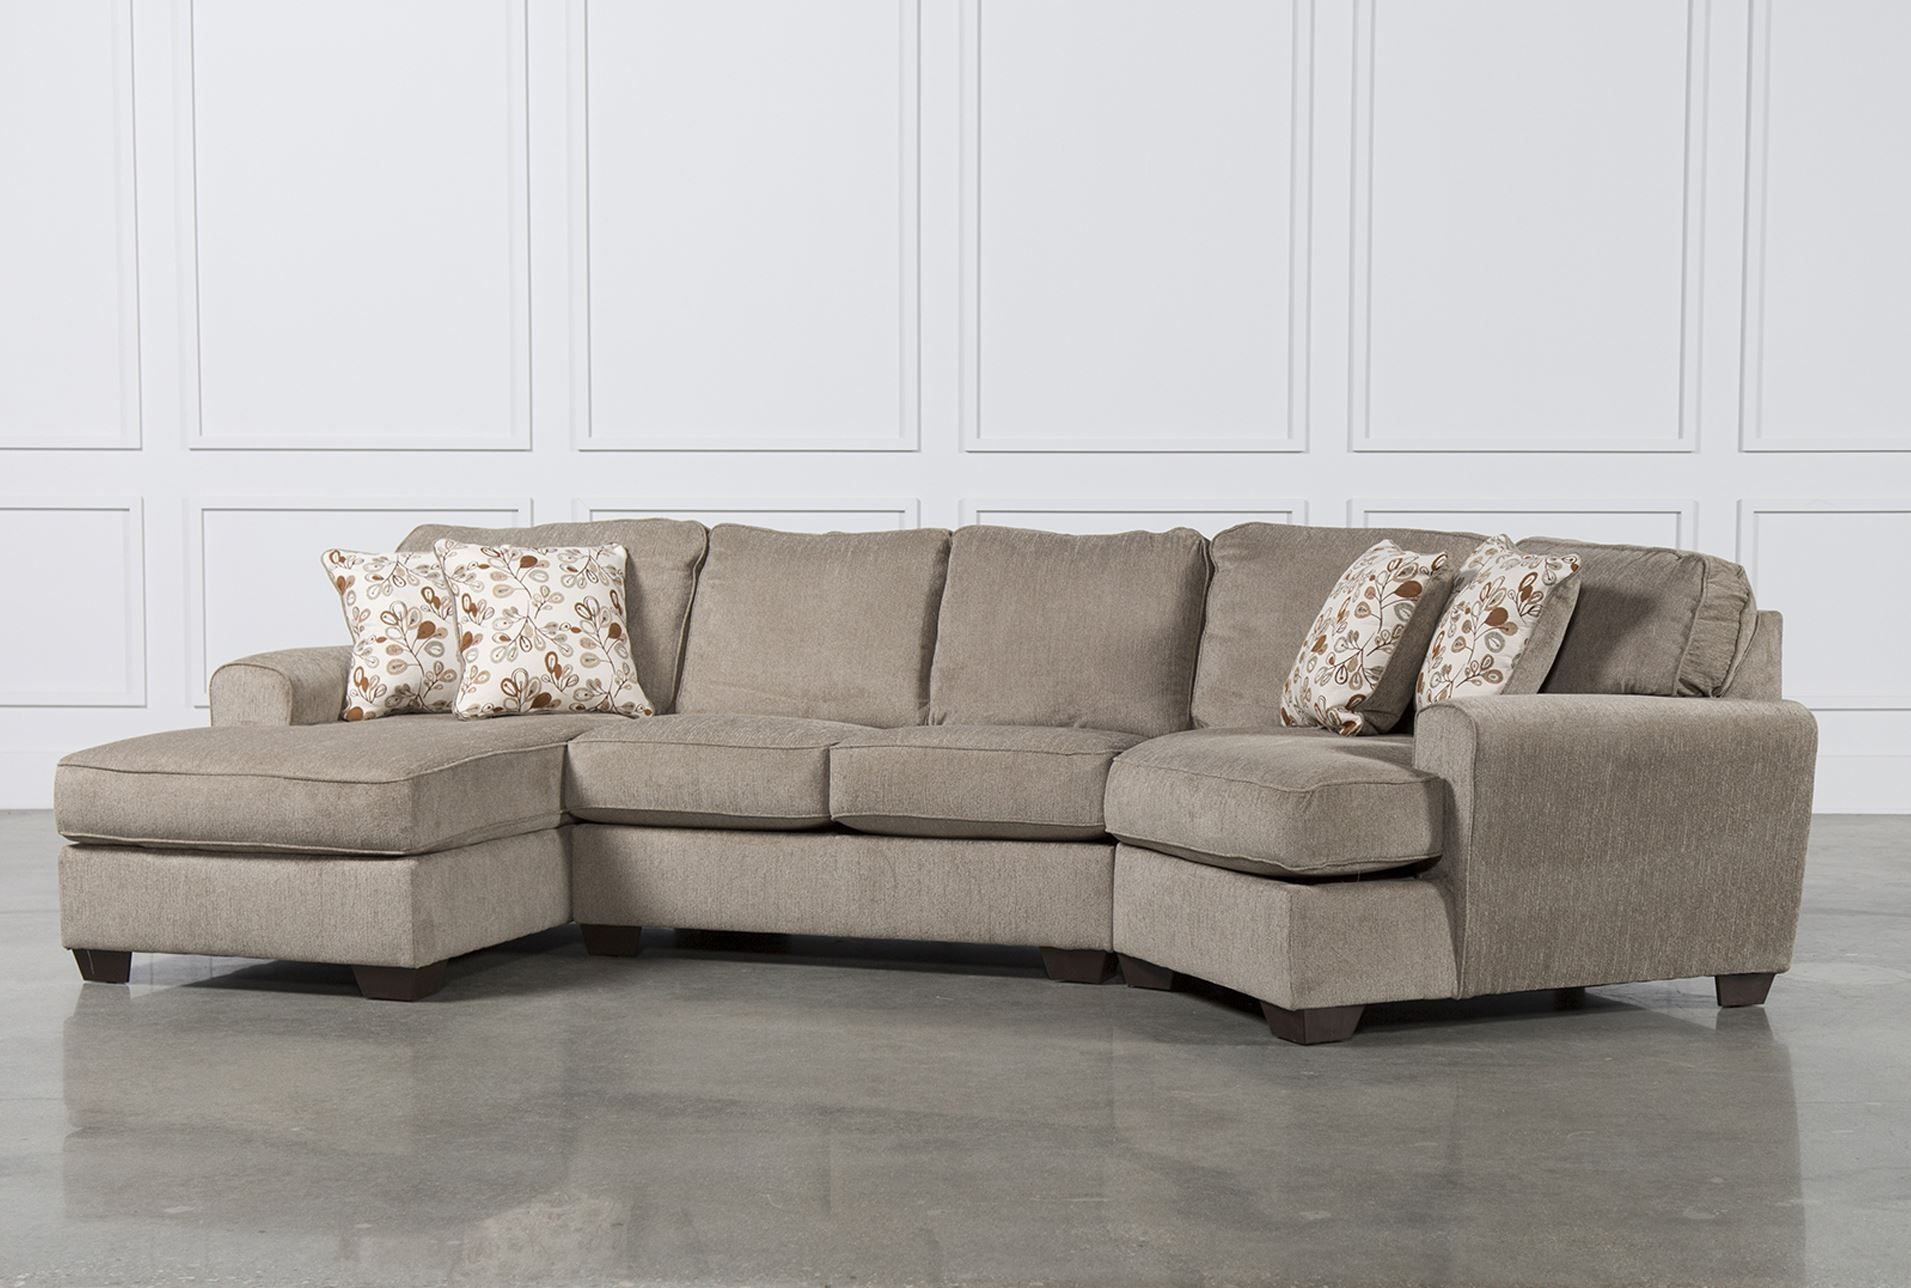 Sectional Sofas With Cuddler Chaise | Sofas | Pinterest | Living With Mcdade Graphite Sofa Chairs (View 25 of 25)